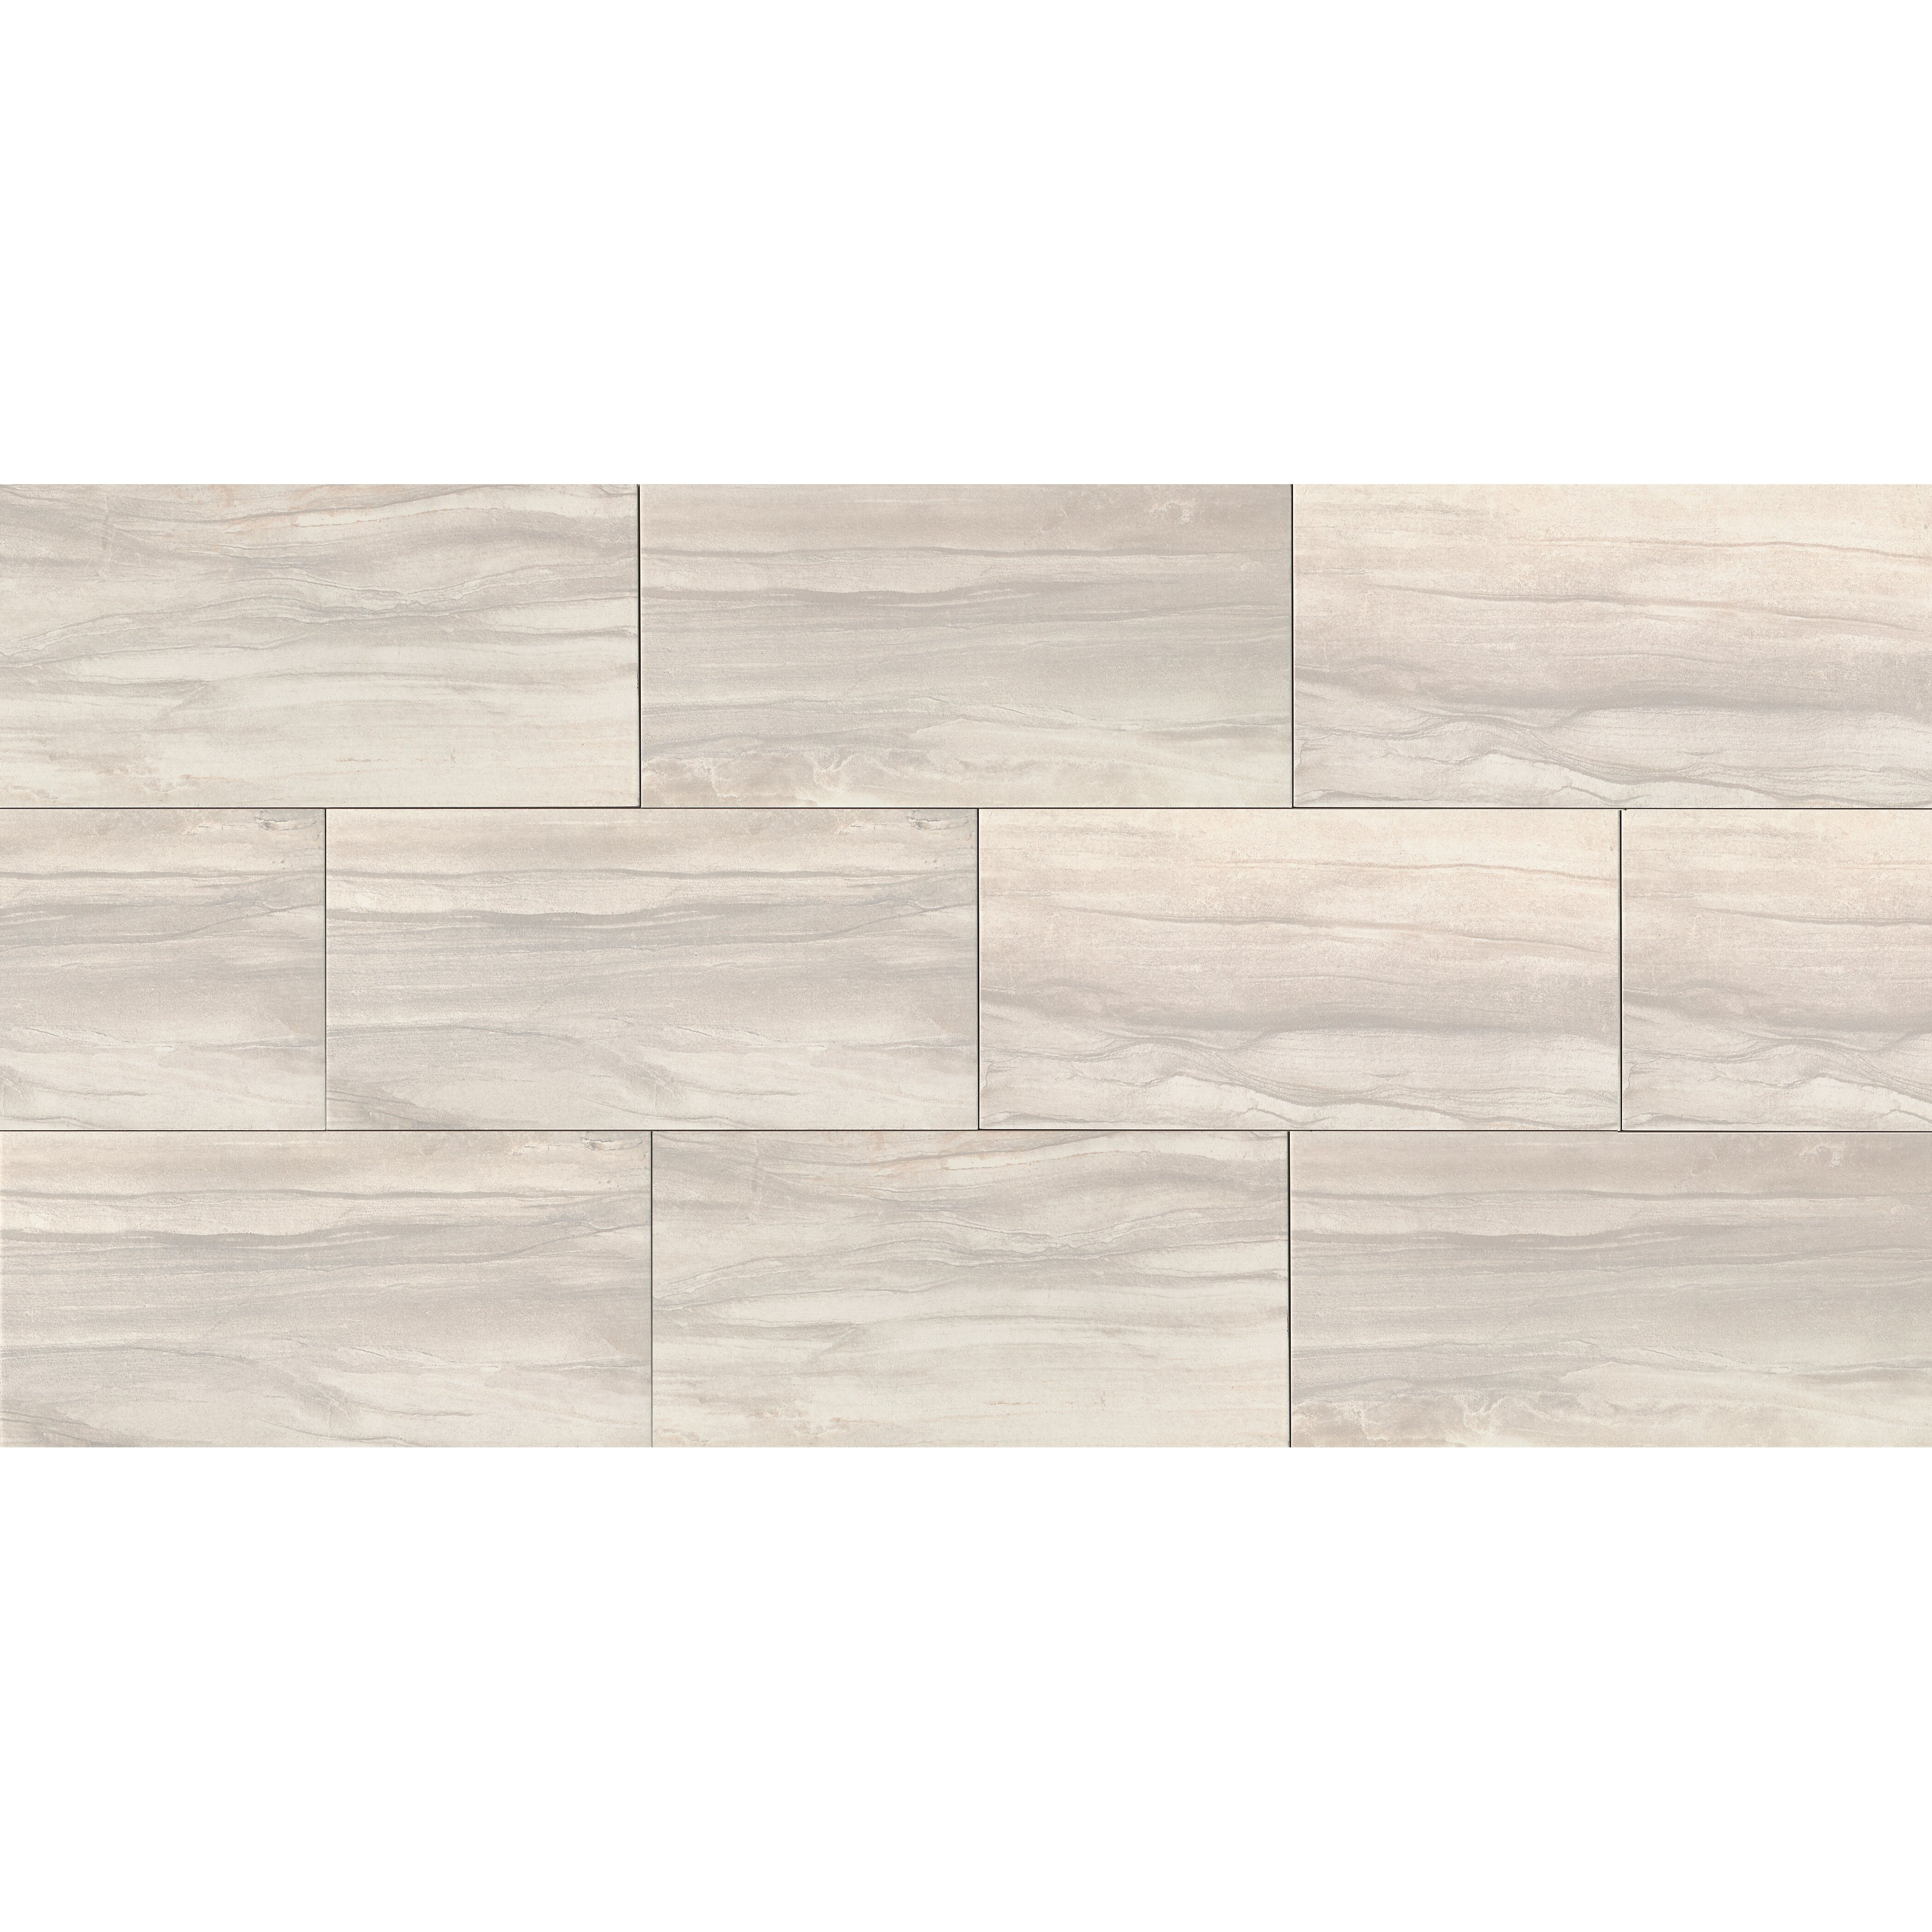 Athena 12 x 24 porcelain field tile in pearl wayfair for 18 x 24 floor tile